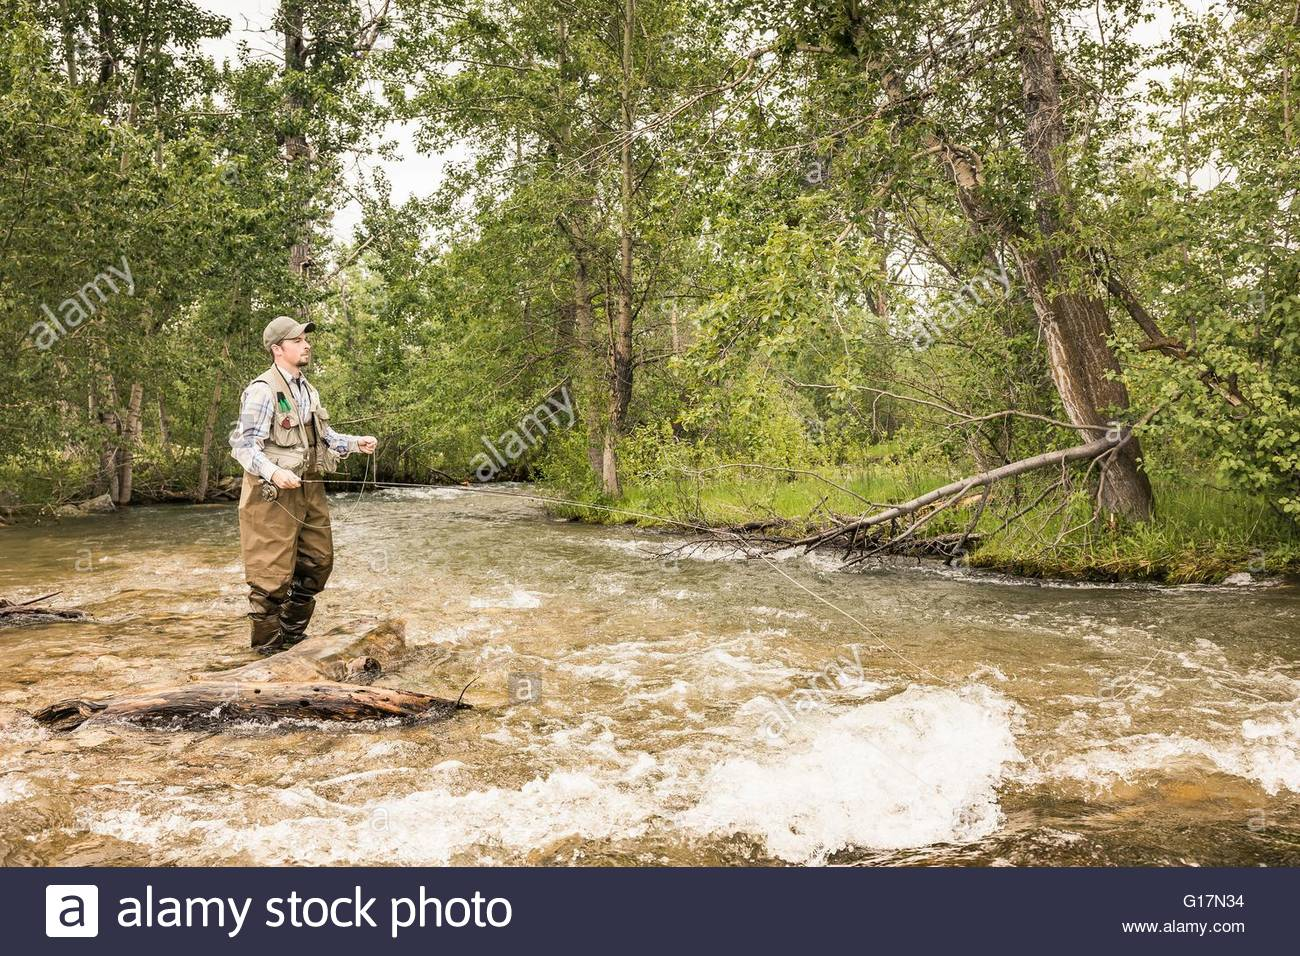 Man wearing waders ankle deep in water fishing - Stock Image